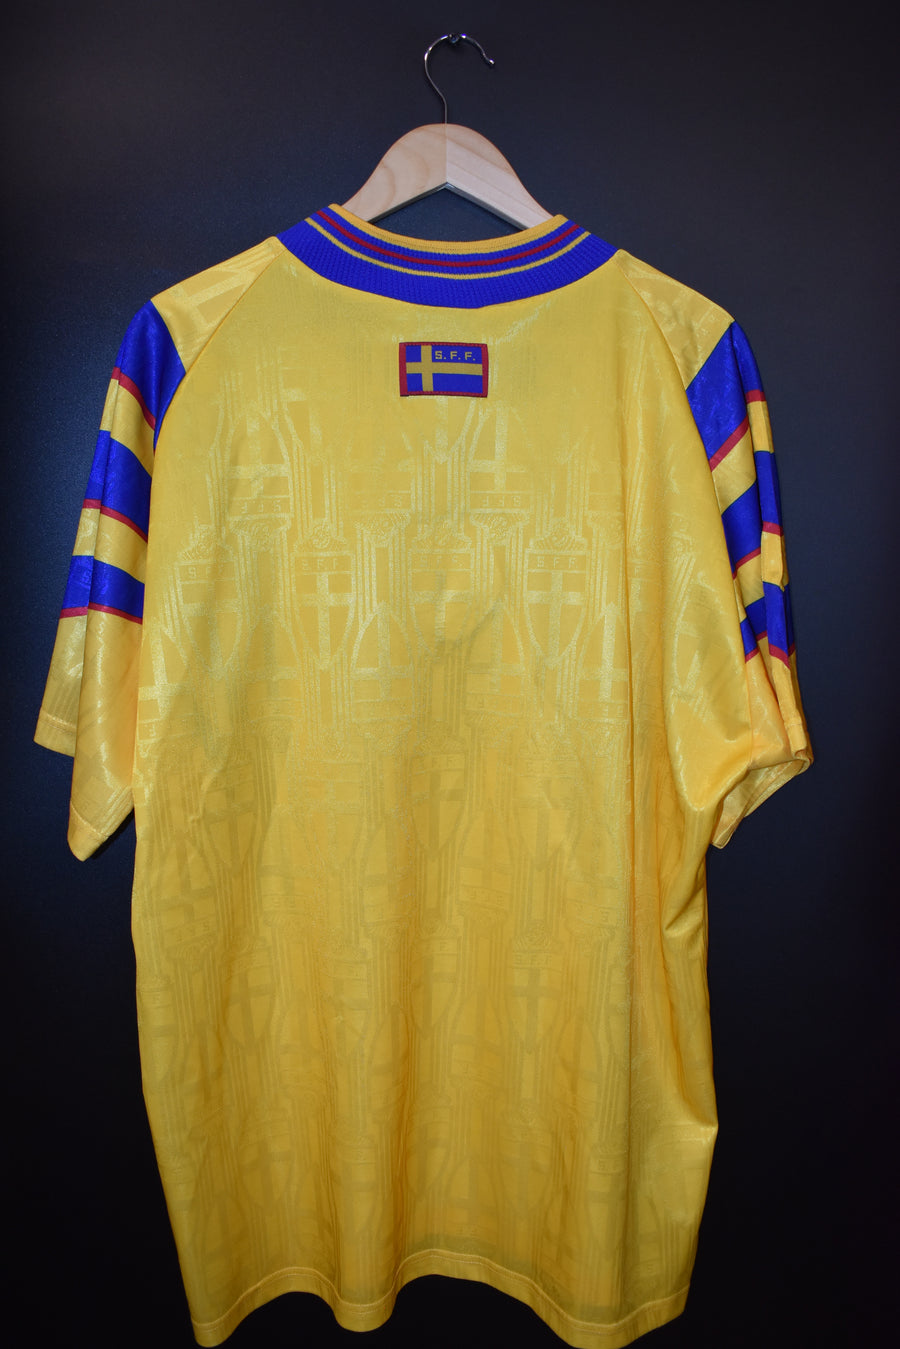 SWEDEN 1996-1998  OFFICIAL JERSEY Size XL (VERY GOOD)